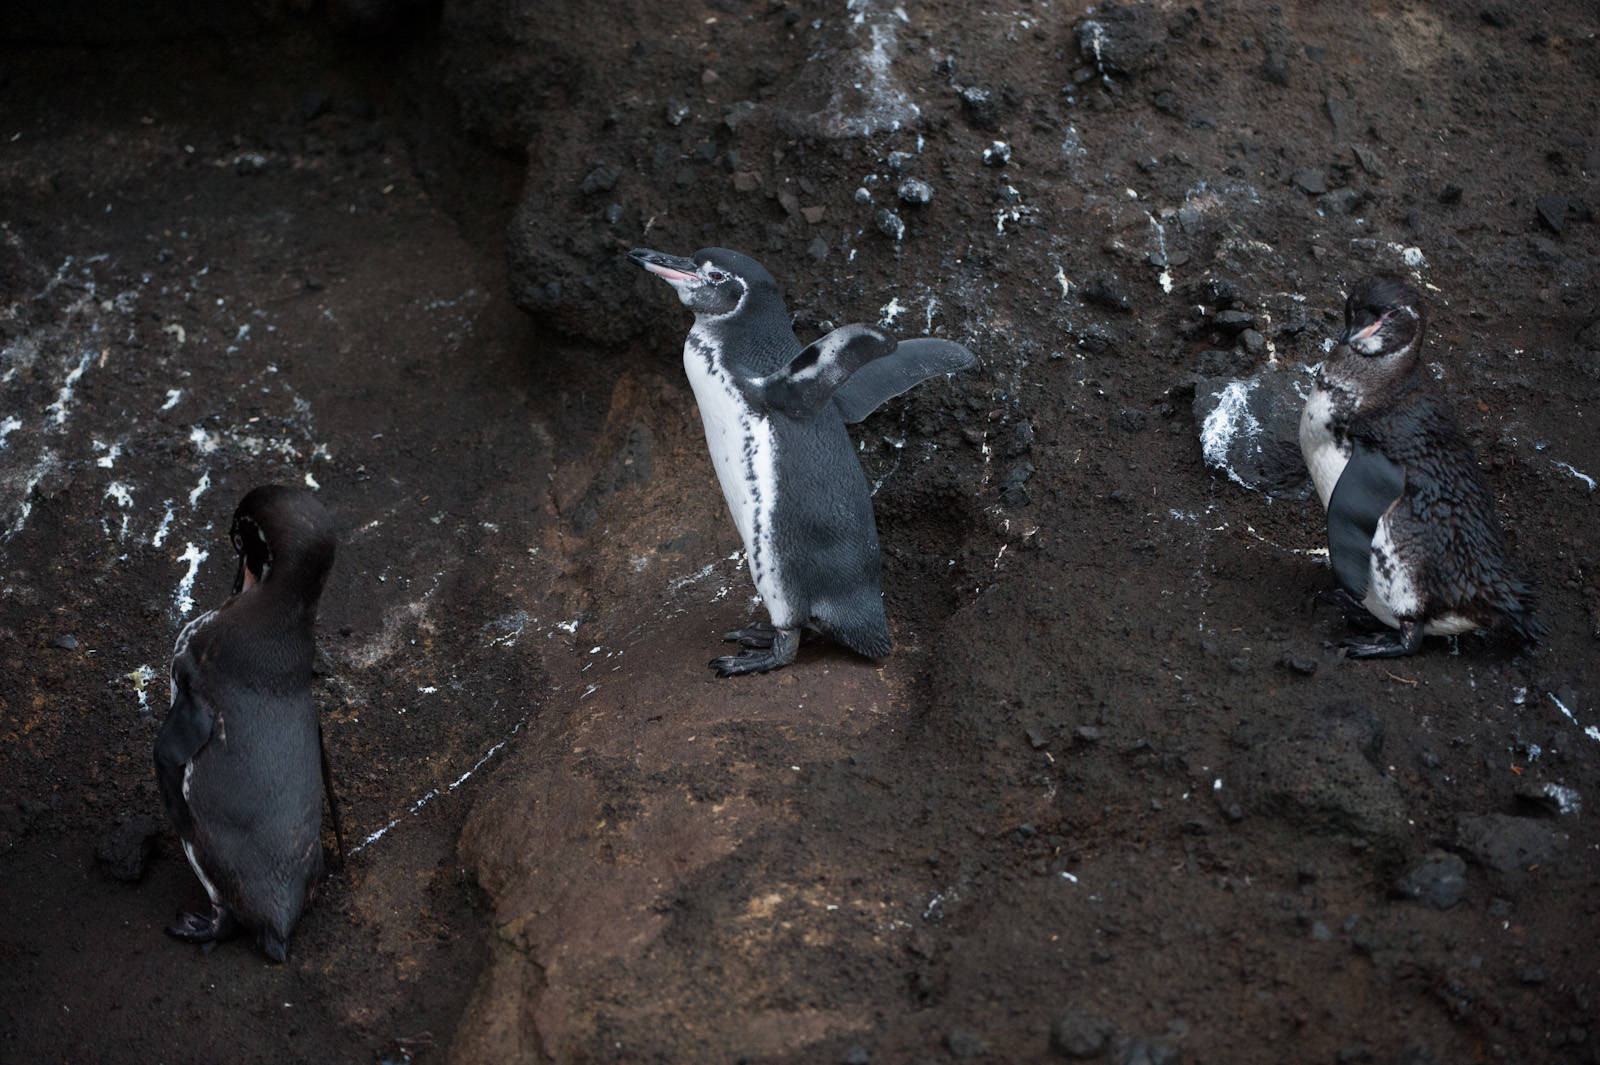 Photo: Galapagos penguins (Spheniscus mendiculus) at Tagus Cove in Galapagos National Park.